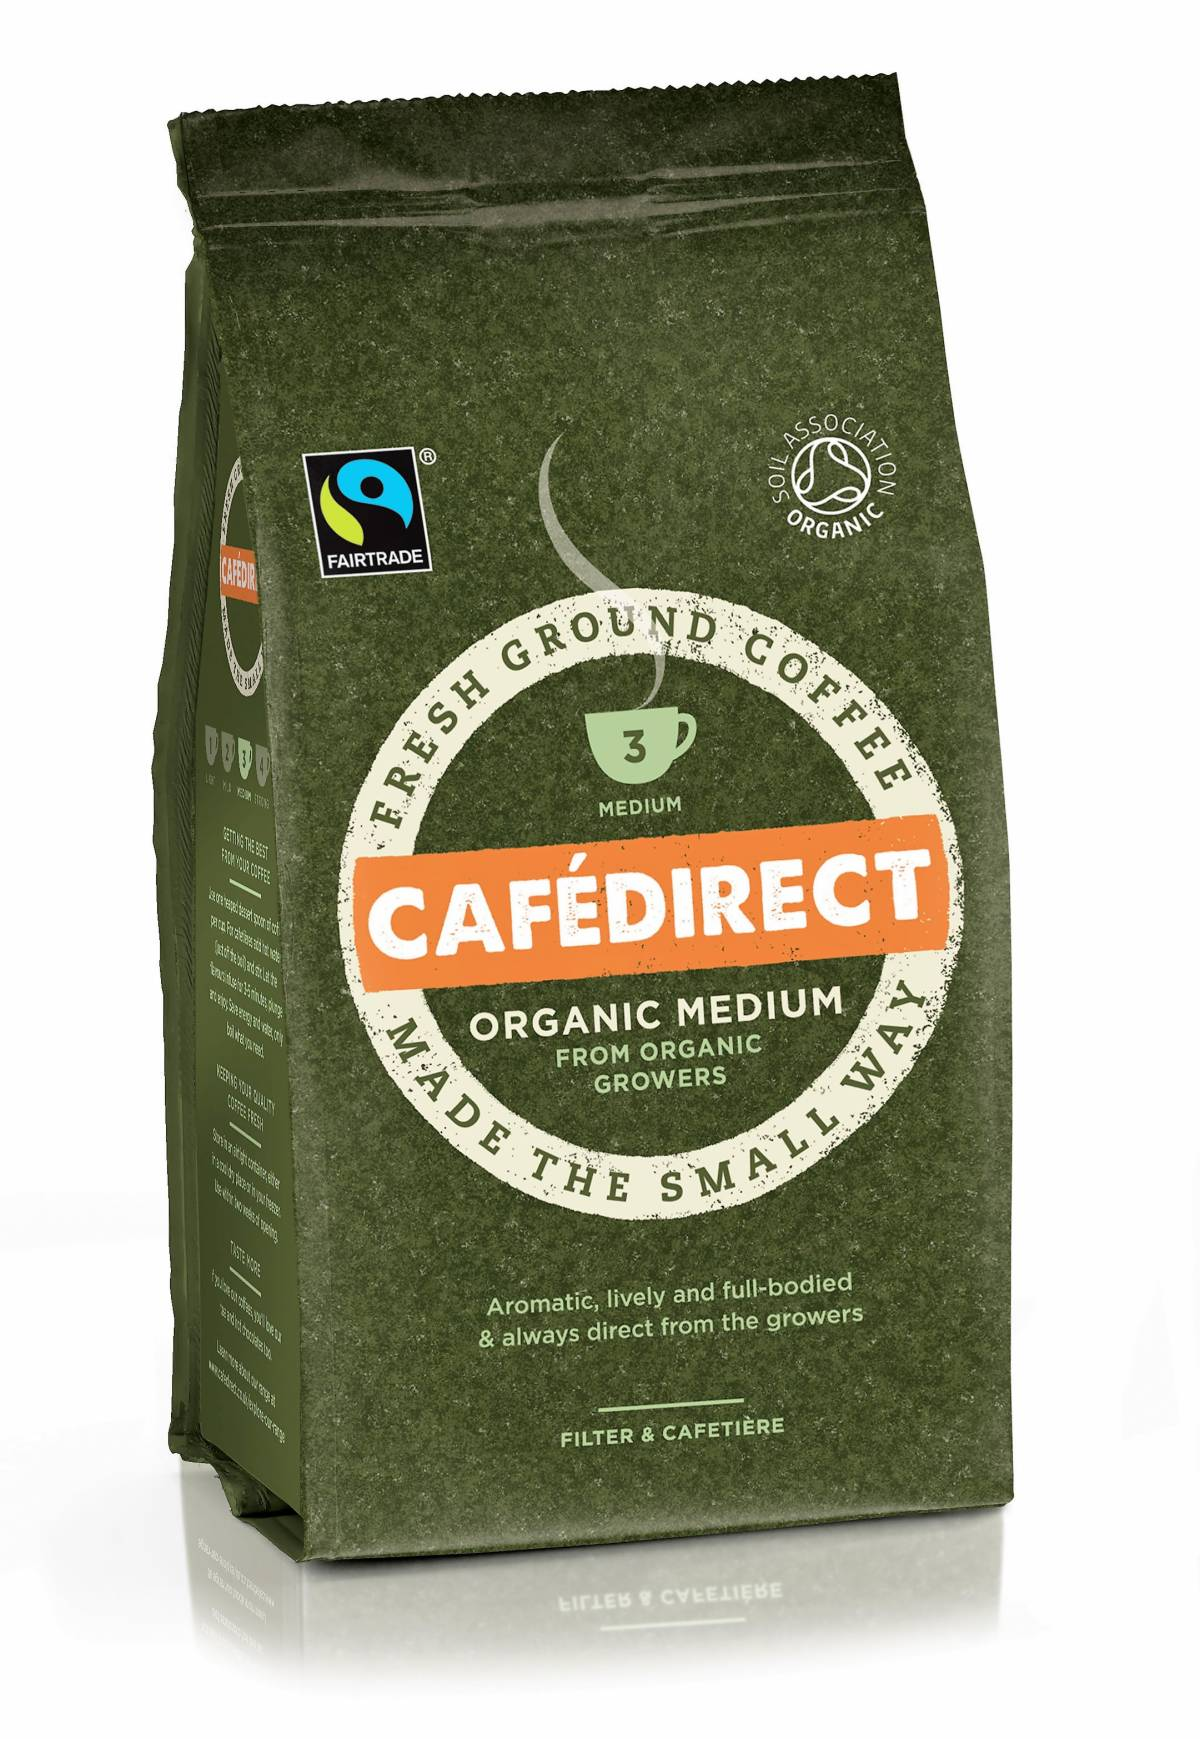 CAFÉDIRECT ORGANIC MEDIUM ROAST COFFEE BRINGS THE BEST OF NATURE'S NATURAL HARVEST TO COFFEE LOVERS